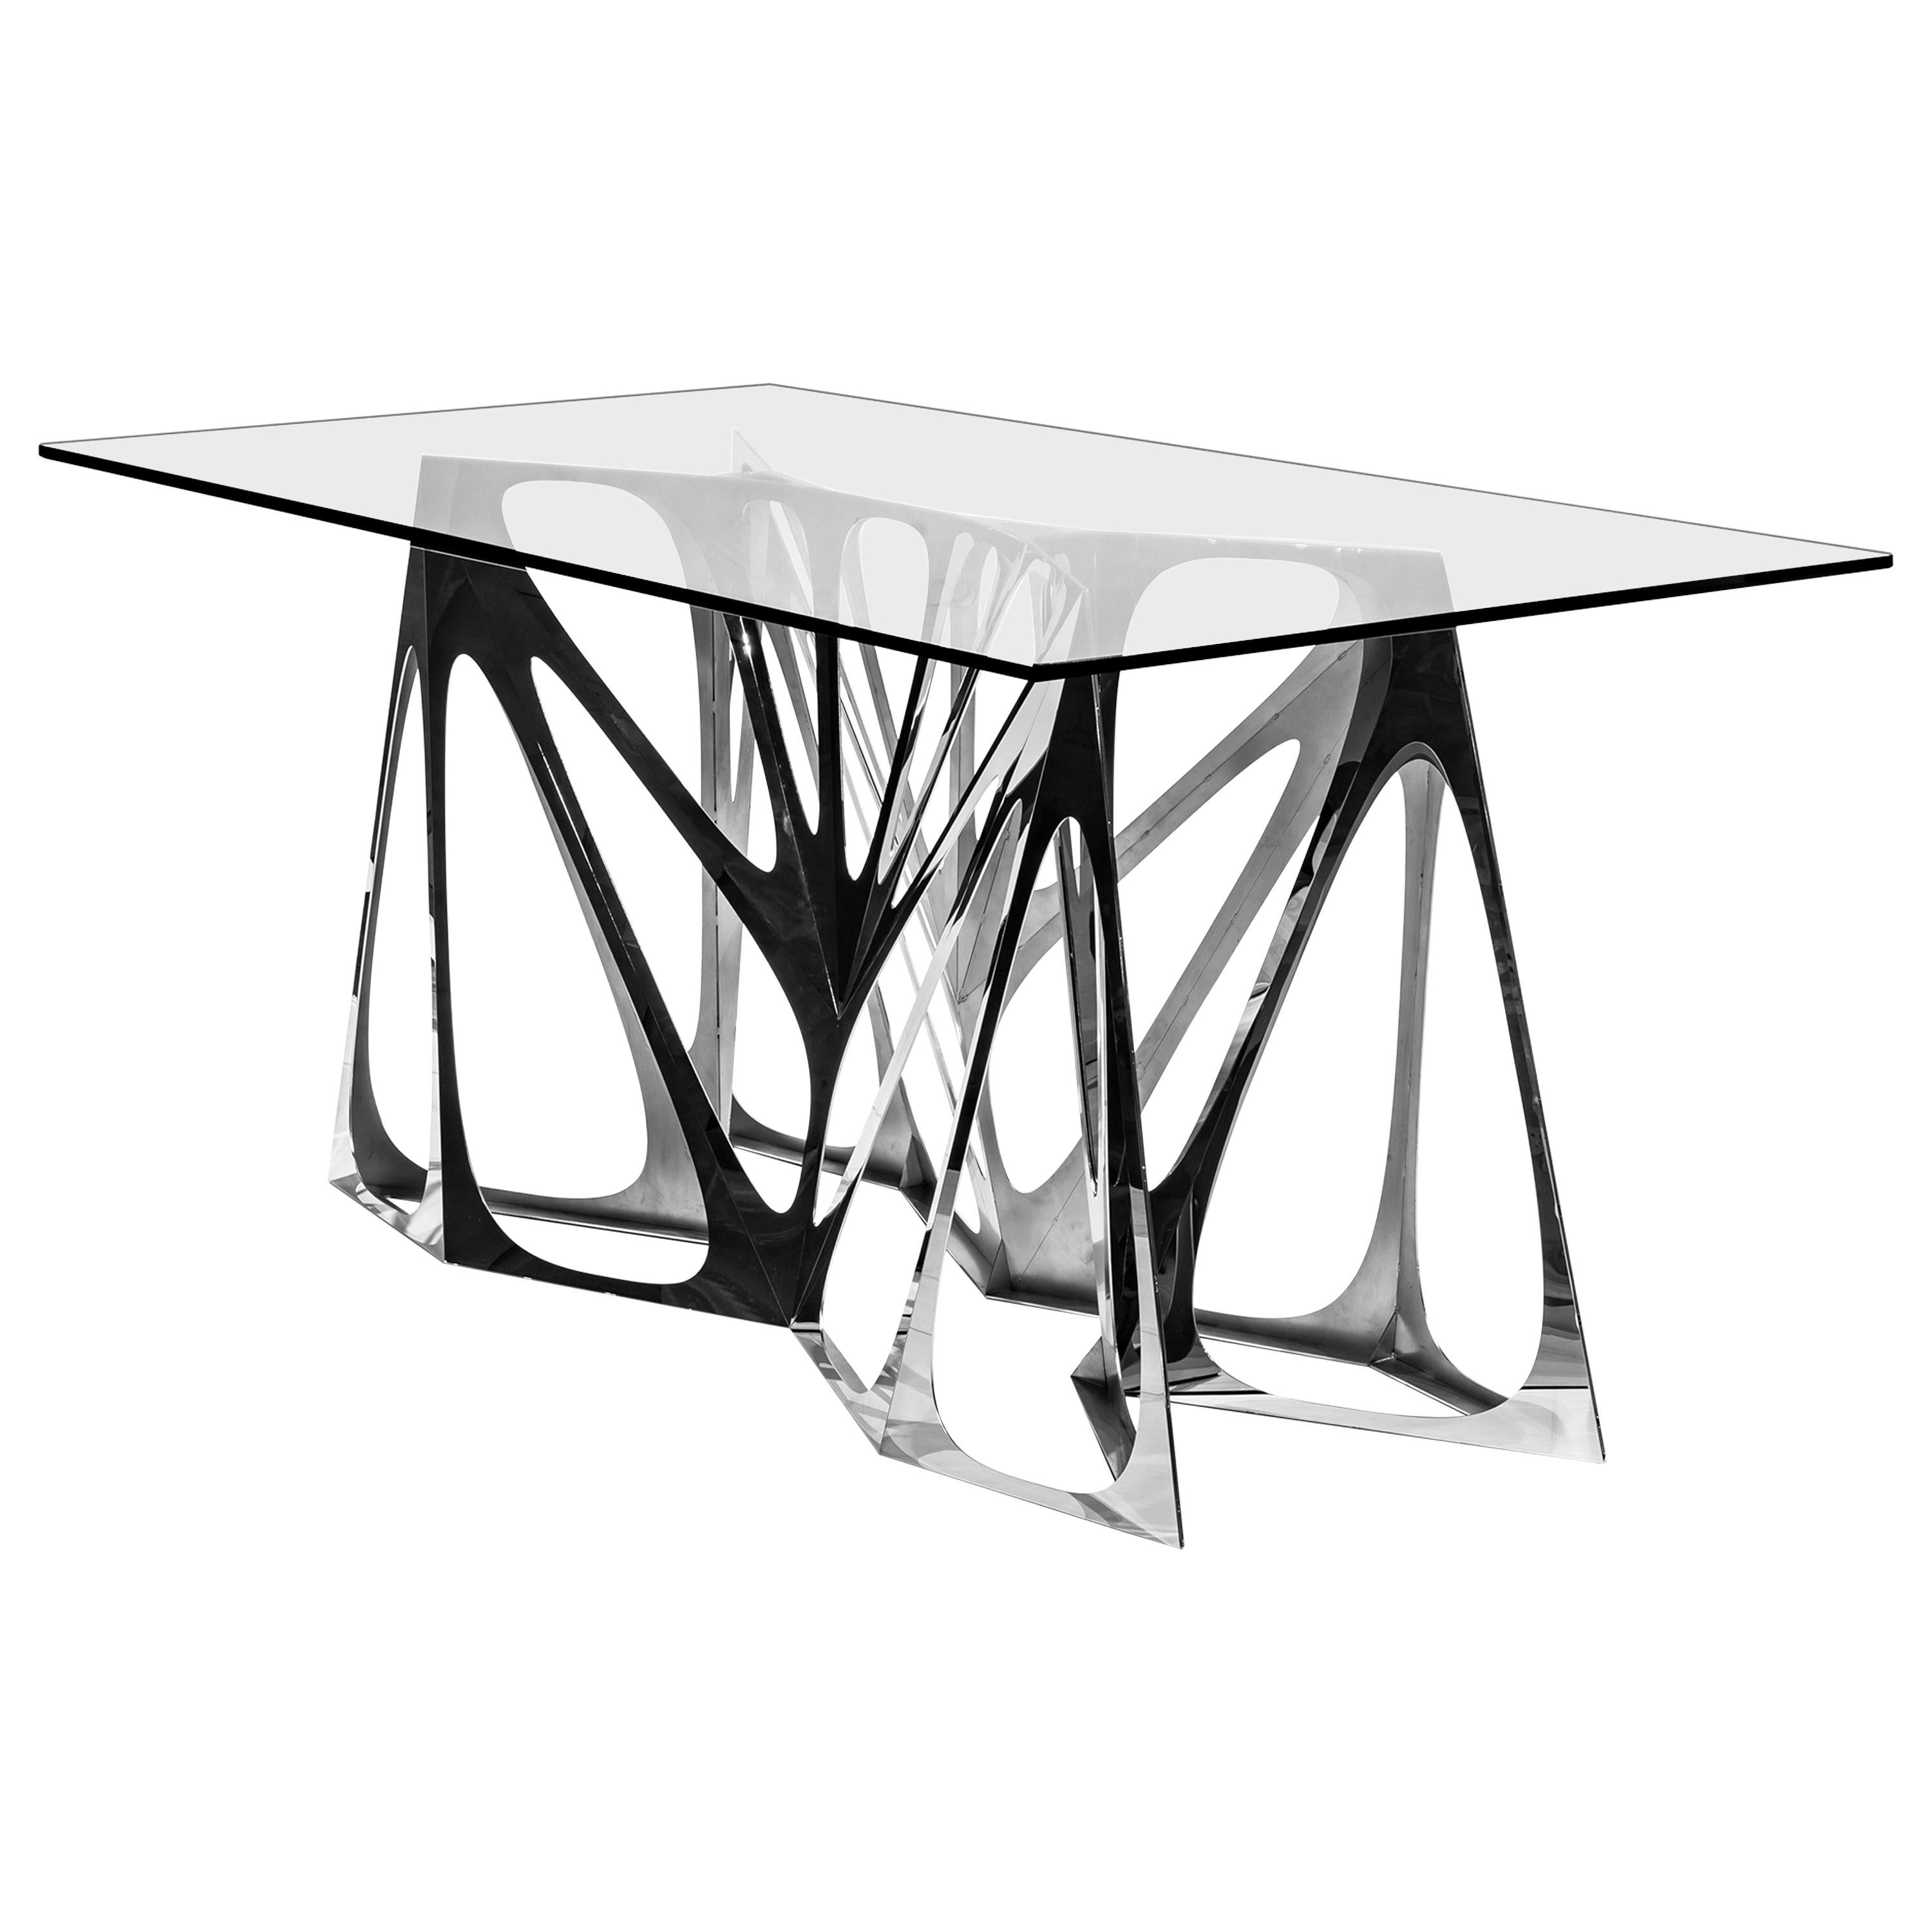 Object #MT-S4-F Mirror Polished Stainless Steel Table by Zhoujie Zhang